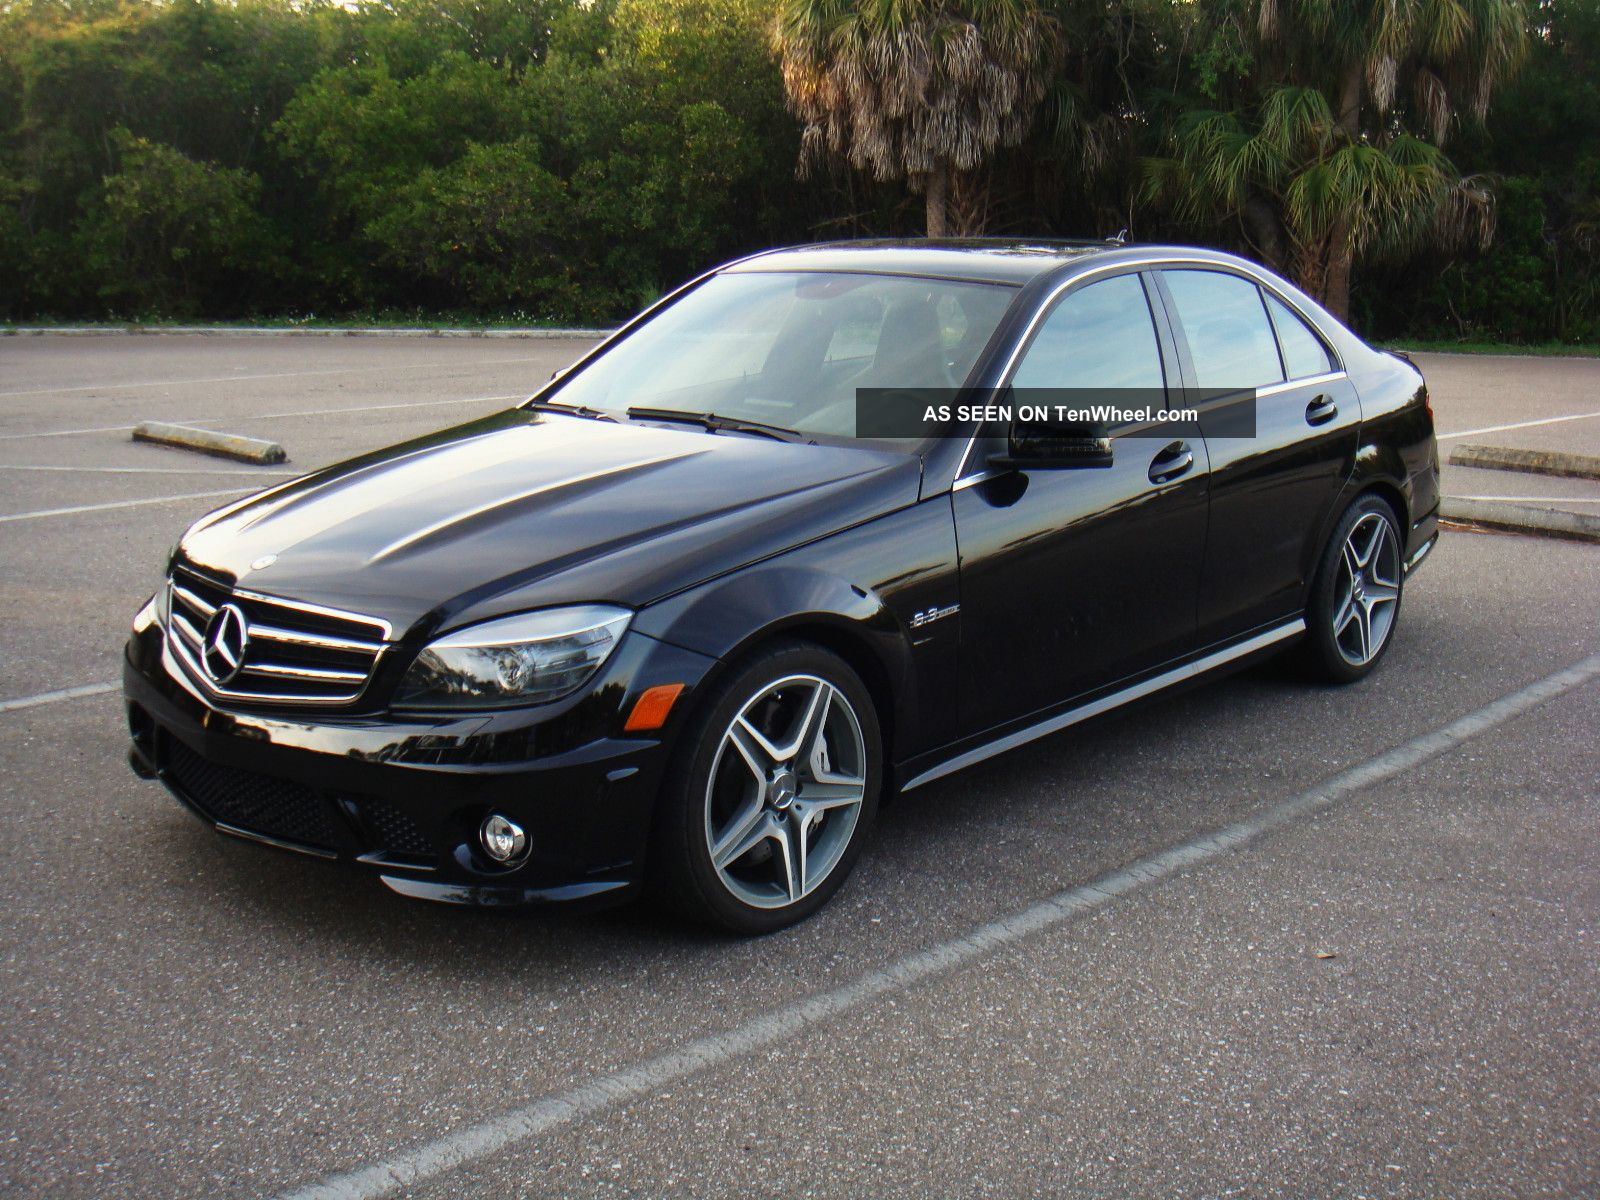 2010 mercedes benz c63 amg sport sedan 4 door 6 3l for Mercedes benz 4 door